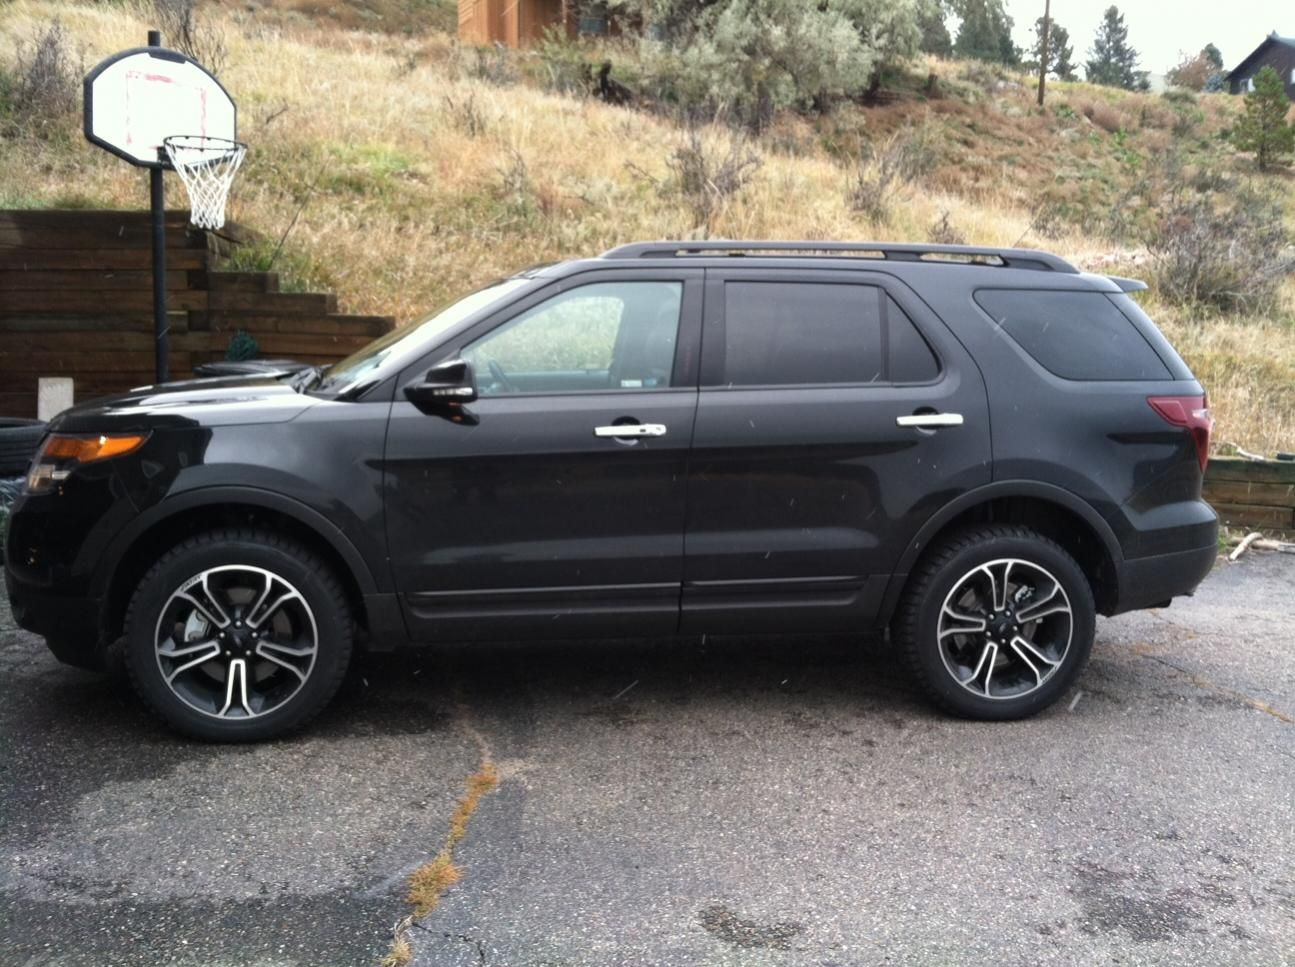 Lift kits for 5th gen. Explorer (With images) Lift kits